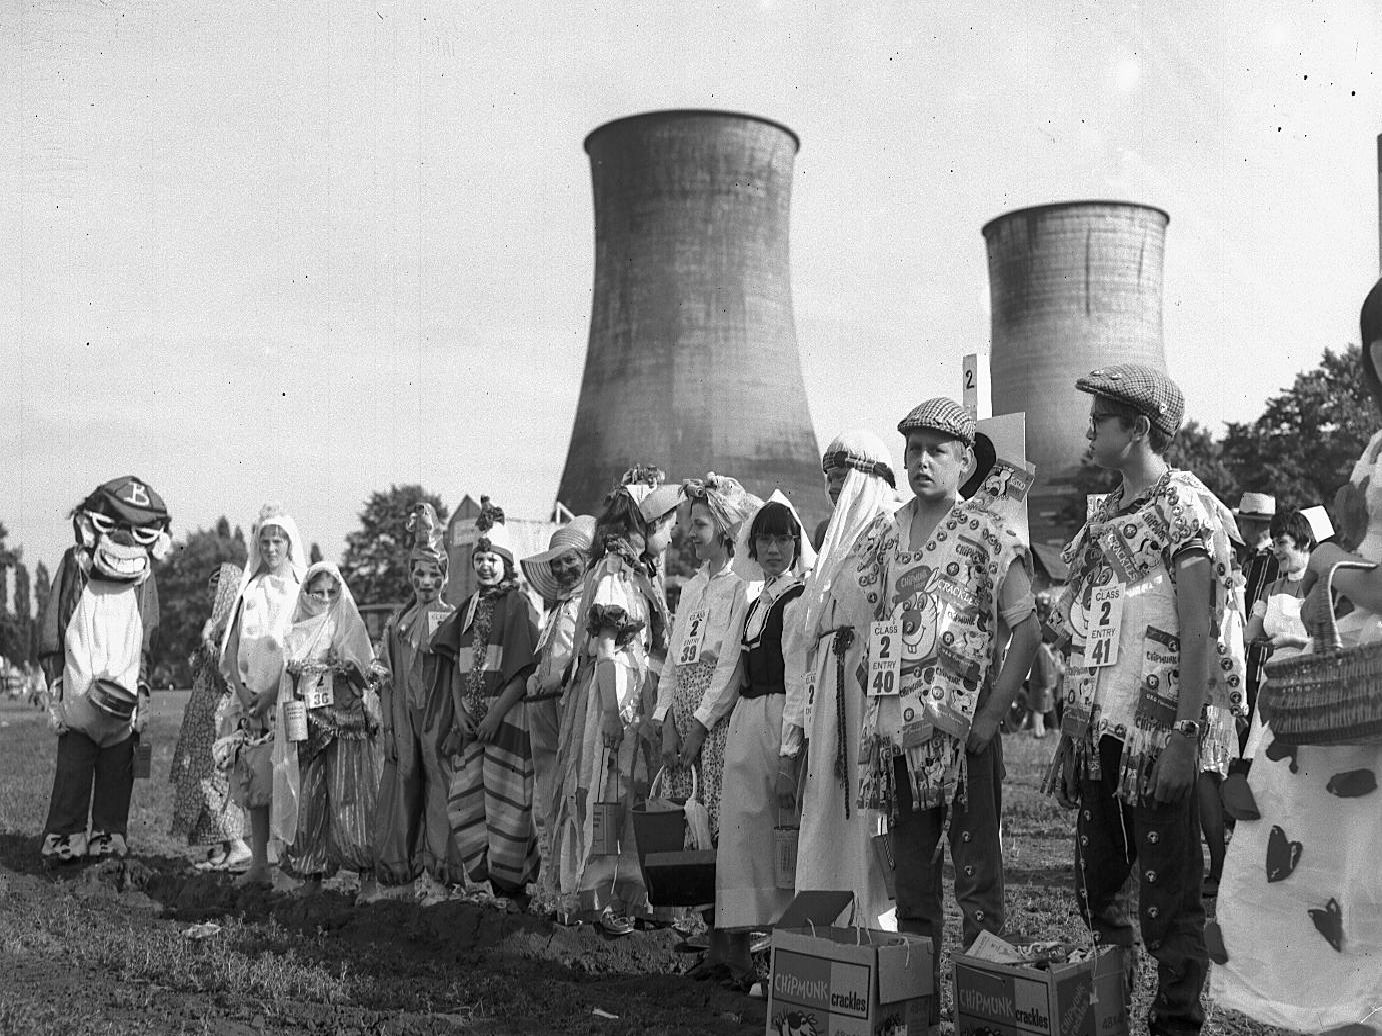 The fancy dress entries for the Northampton Carnival parade gather on Midsummer Meadow on June 21, 1962.